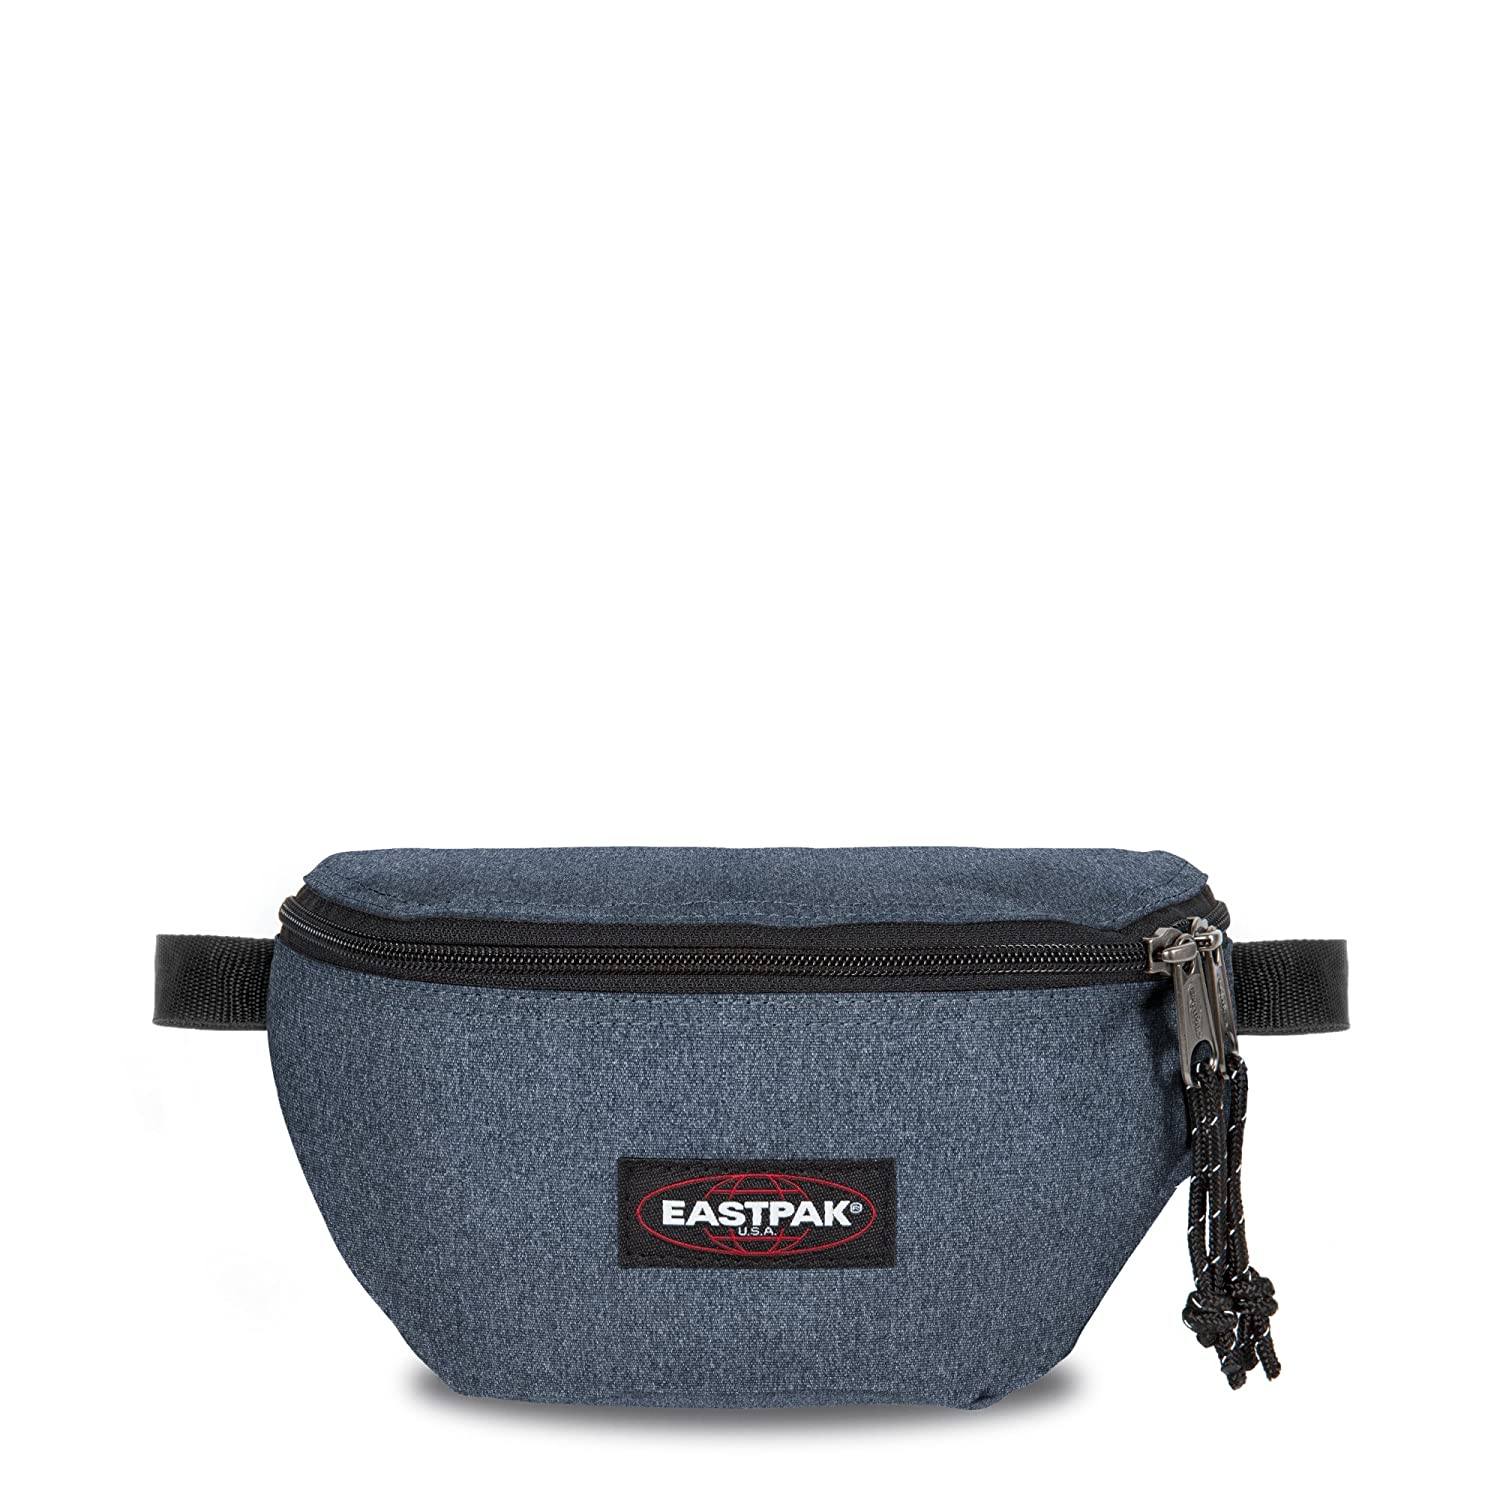 Eastpak Springer Riñonera litros Azul Double Denim